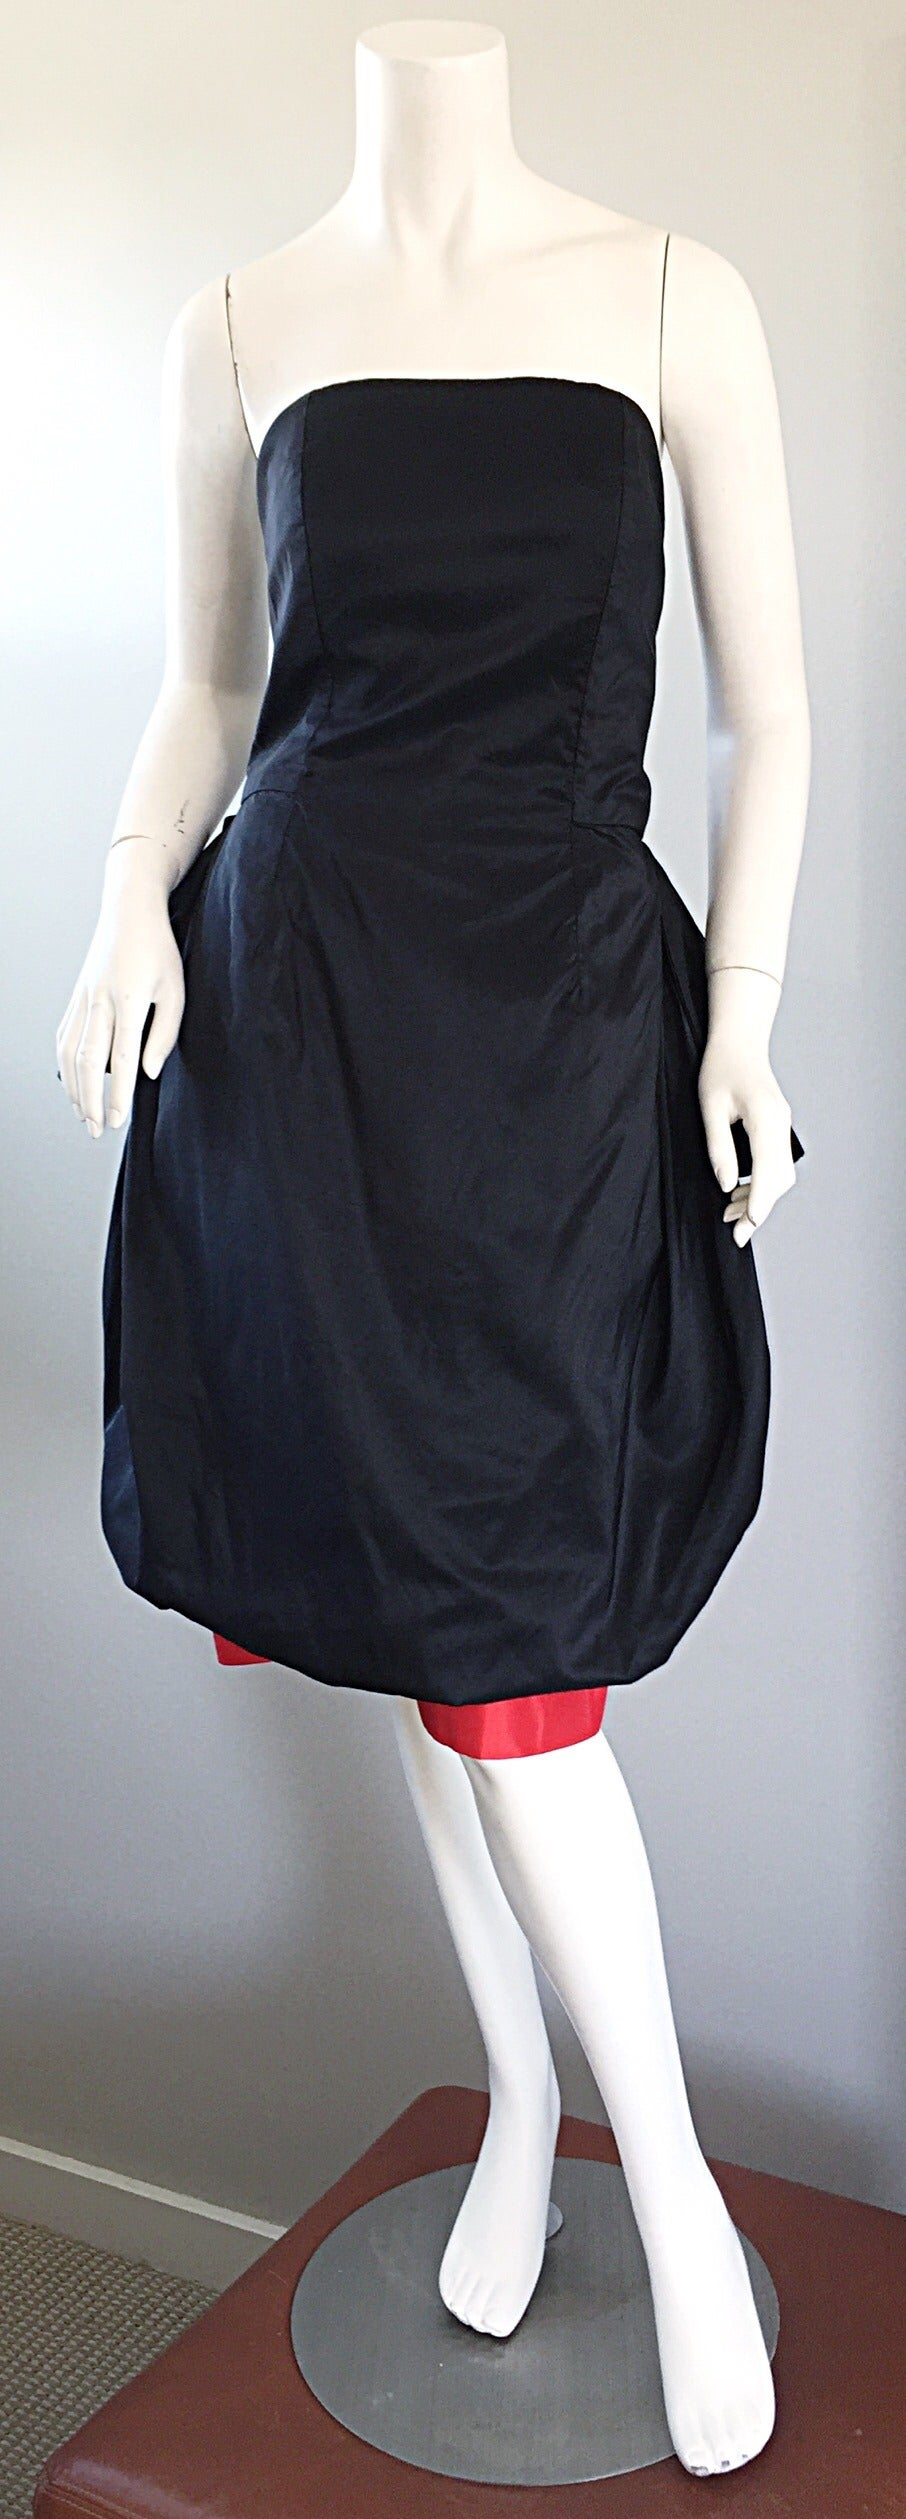 Rare Vintage Adam Beall Black + Red Strapless Silk ' Pouf ' Dress 2